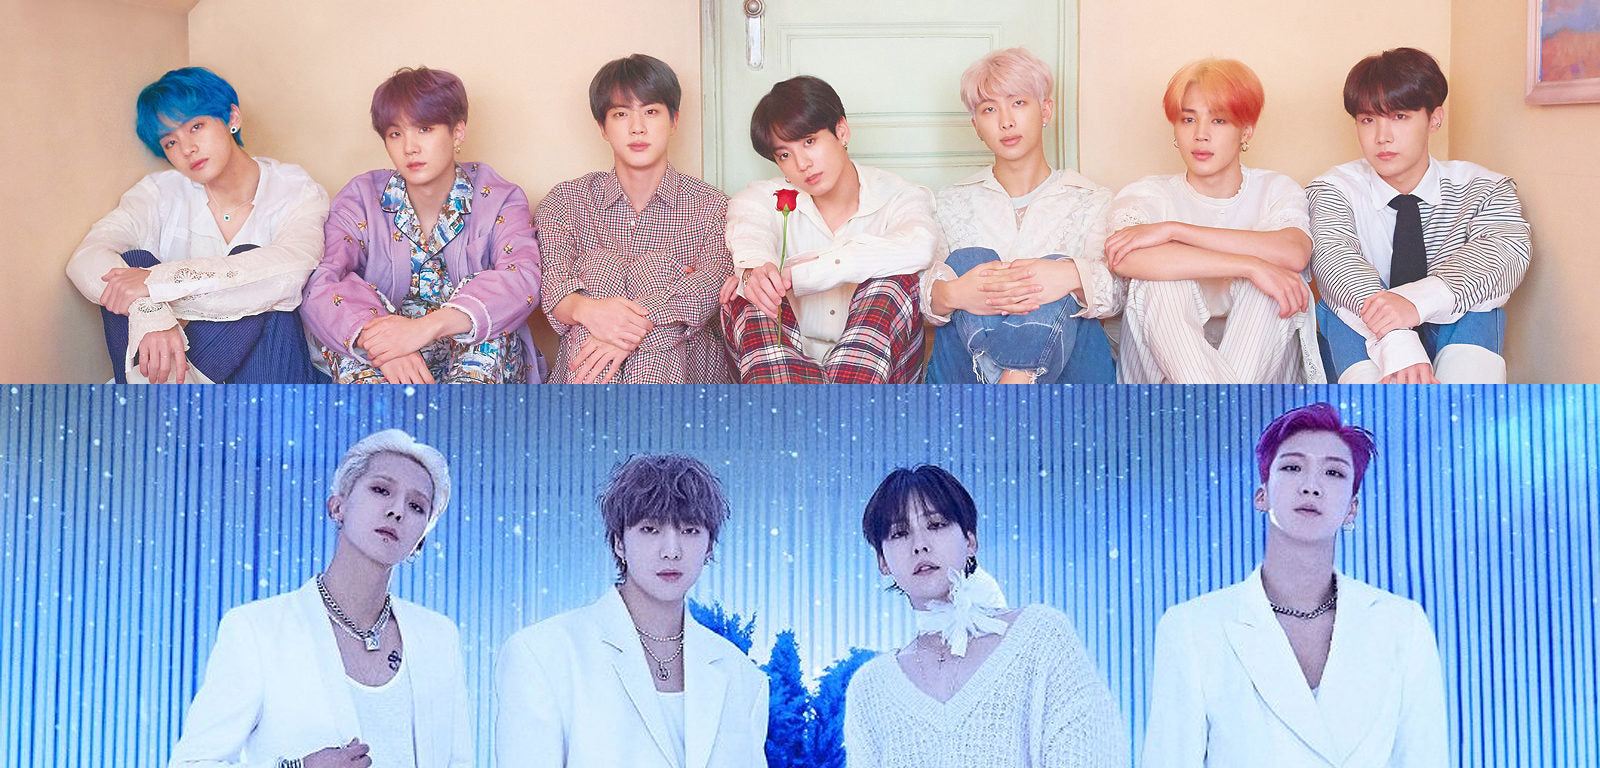 The most downloaded Kpop male band songs in 2019?